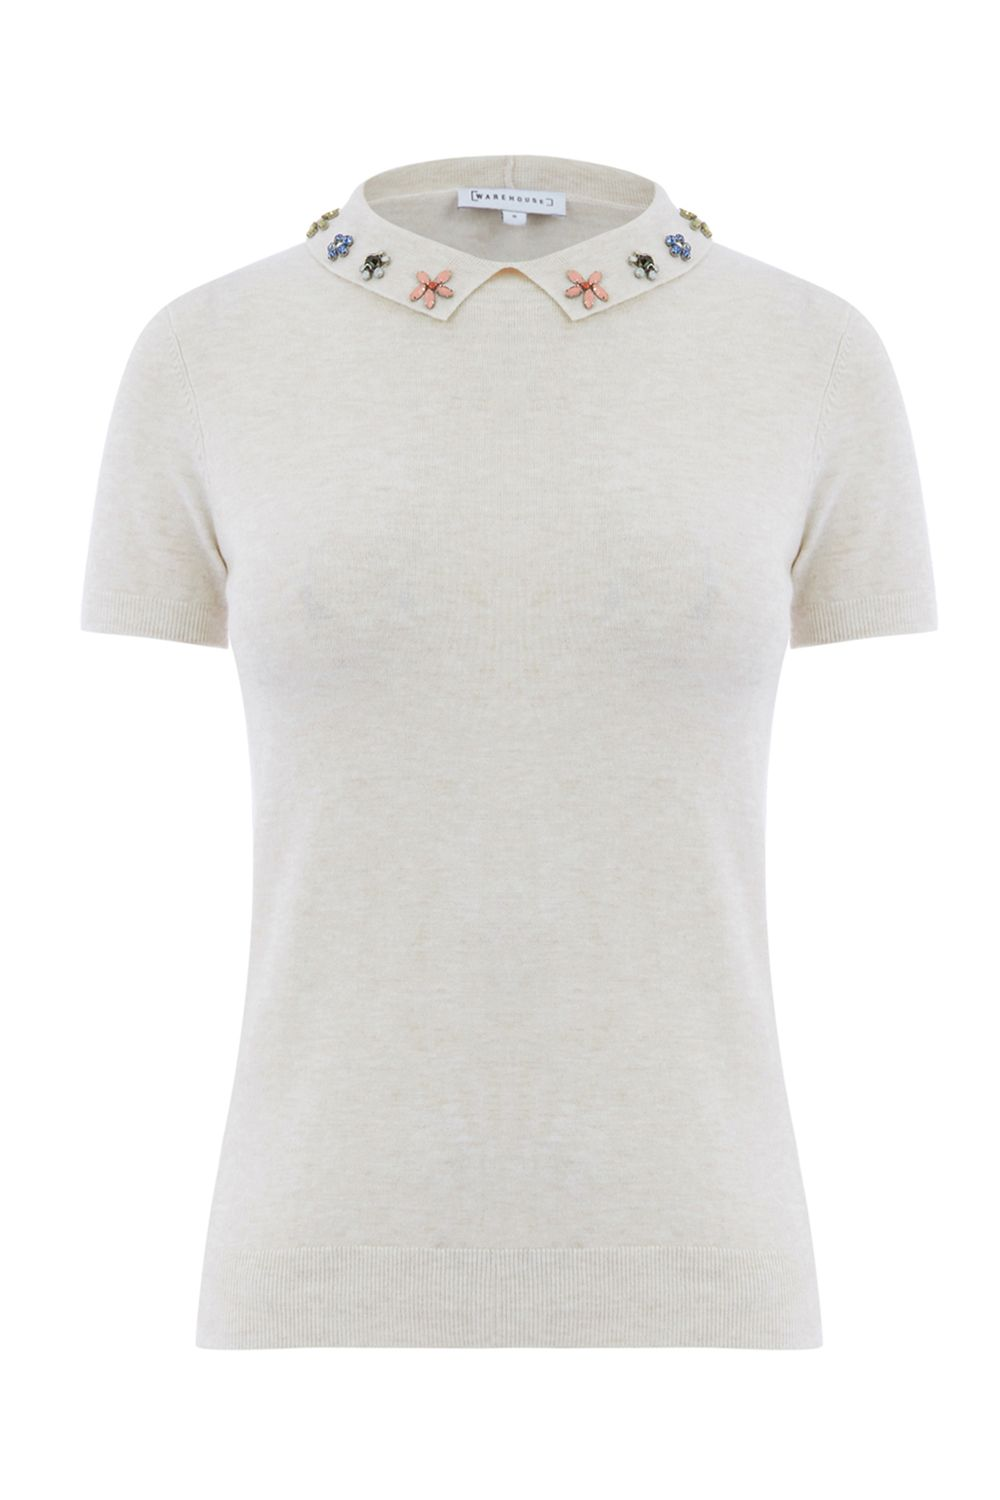 Warehouse Embellished Collar Knitted Top, Cream